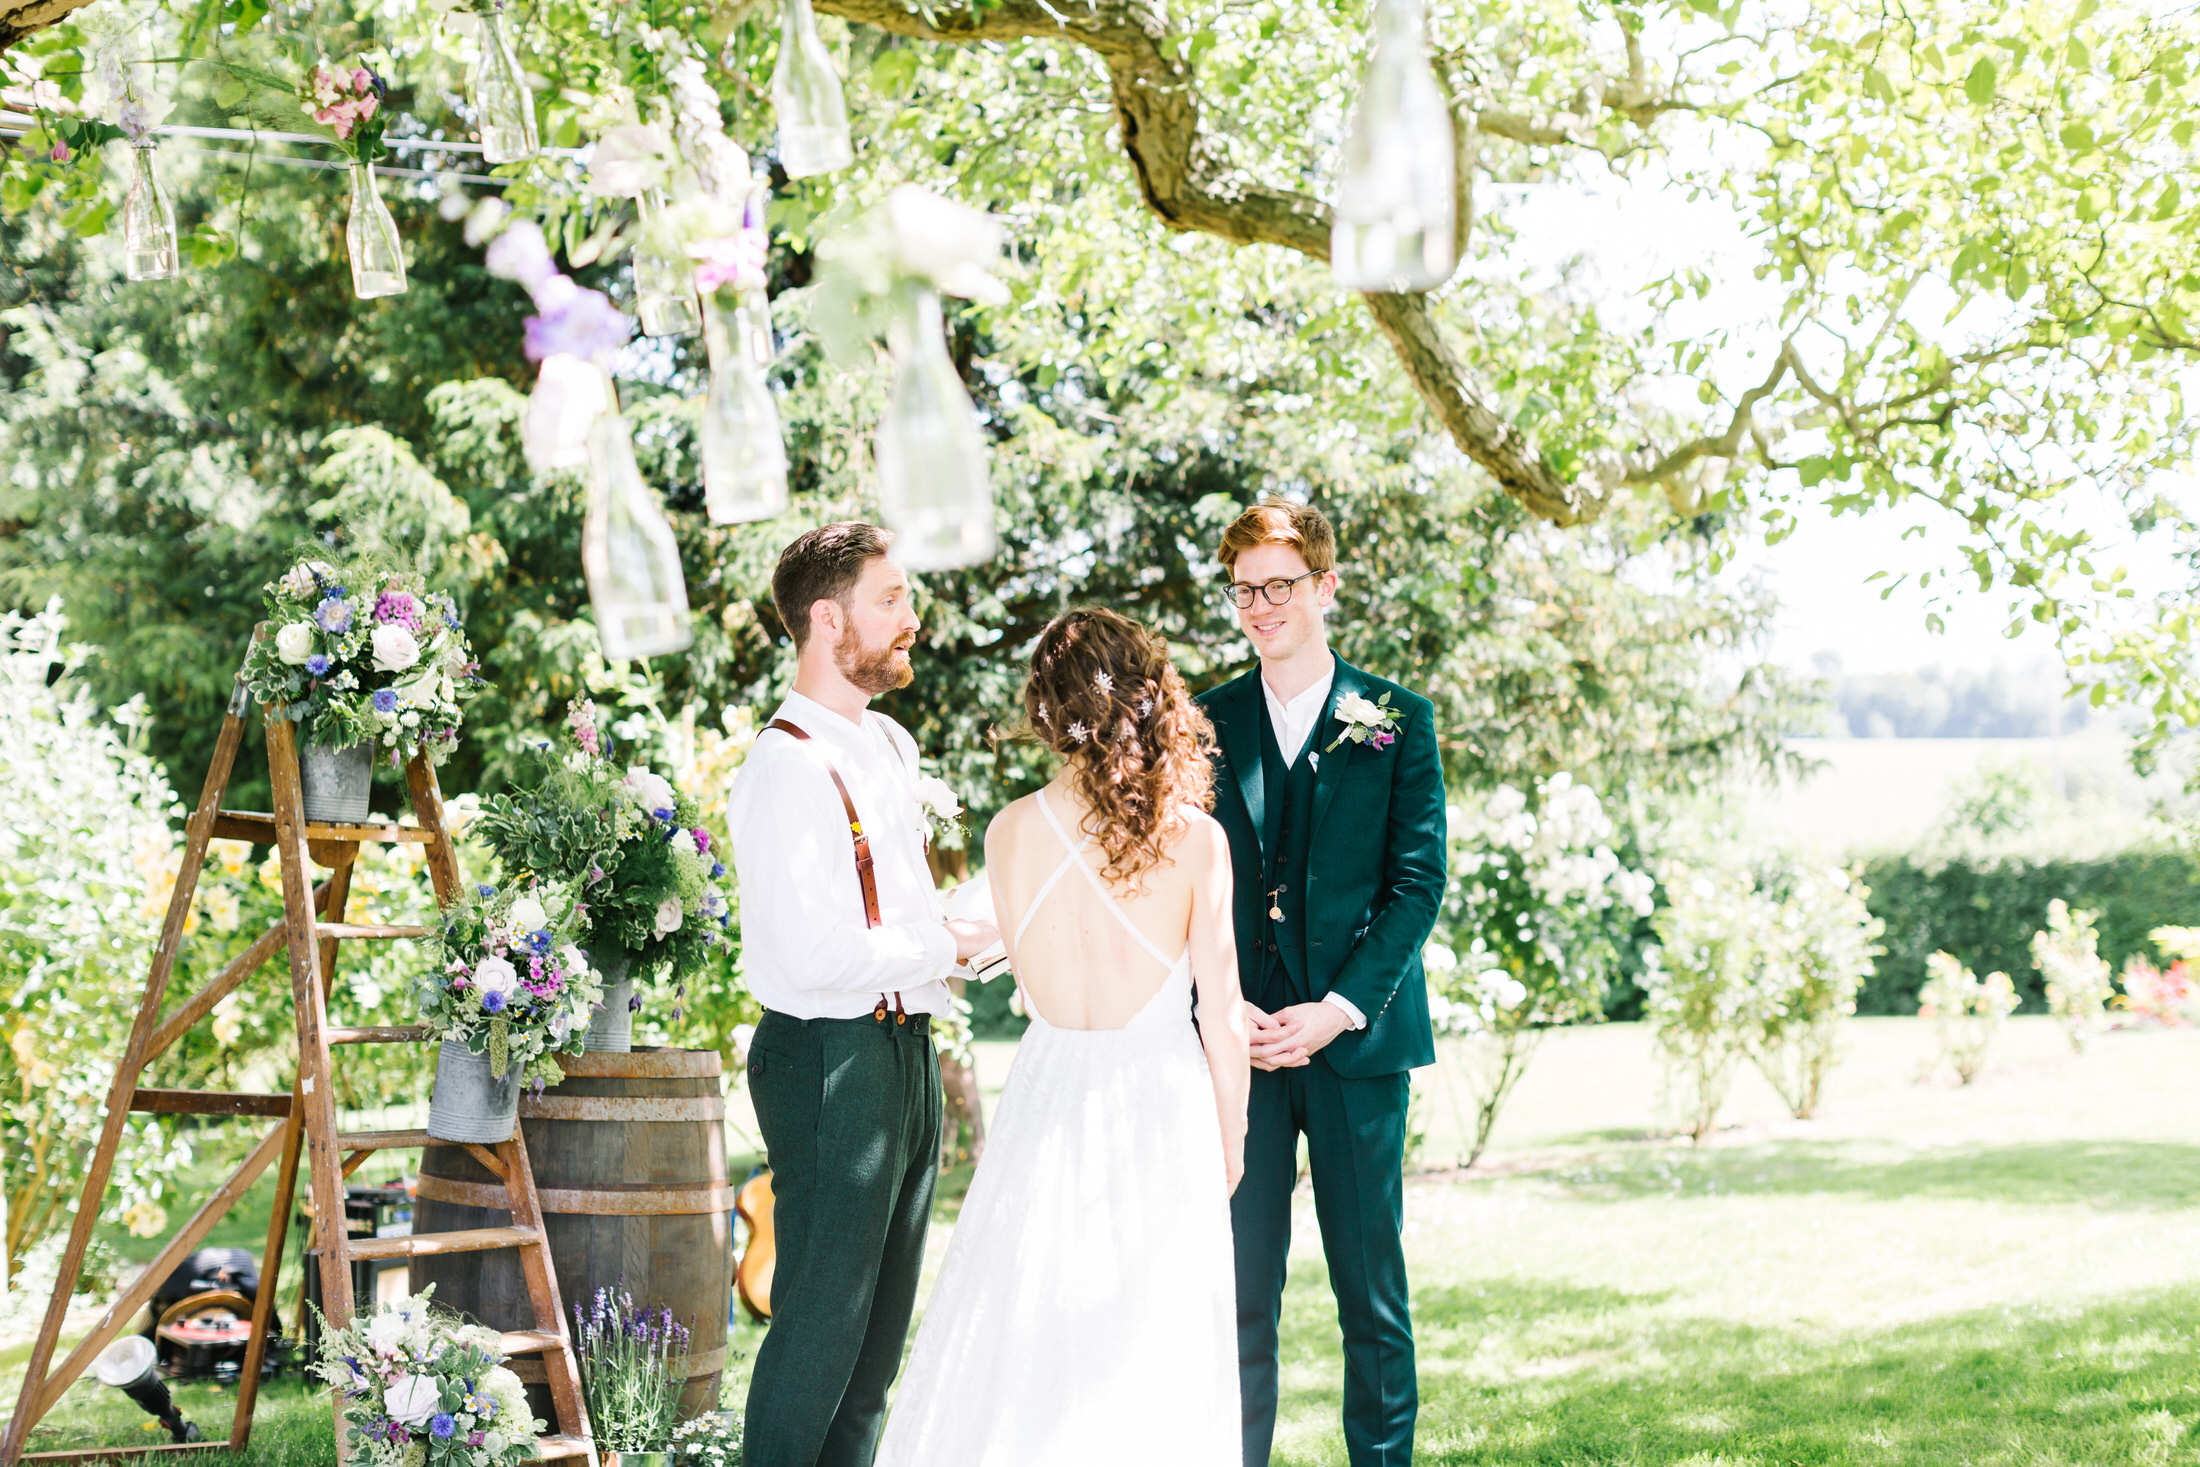 how to plan a back garden wedding bride and groom stand underneath a tree during their ceremony exchanging vows